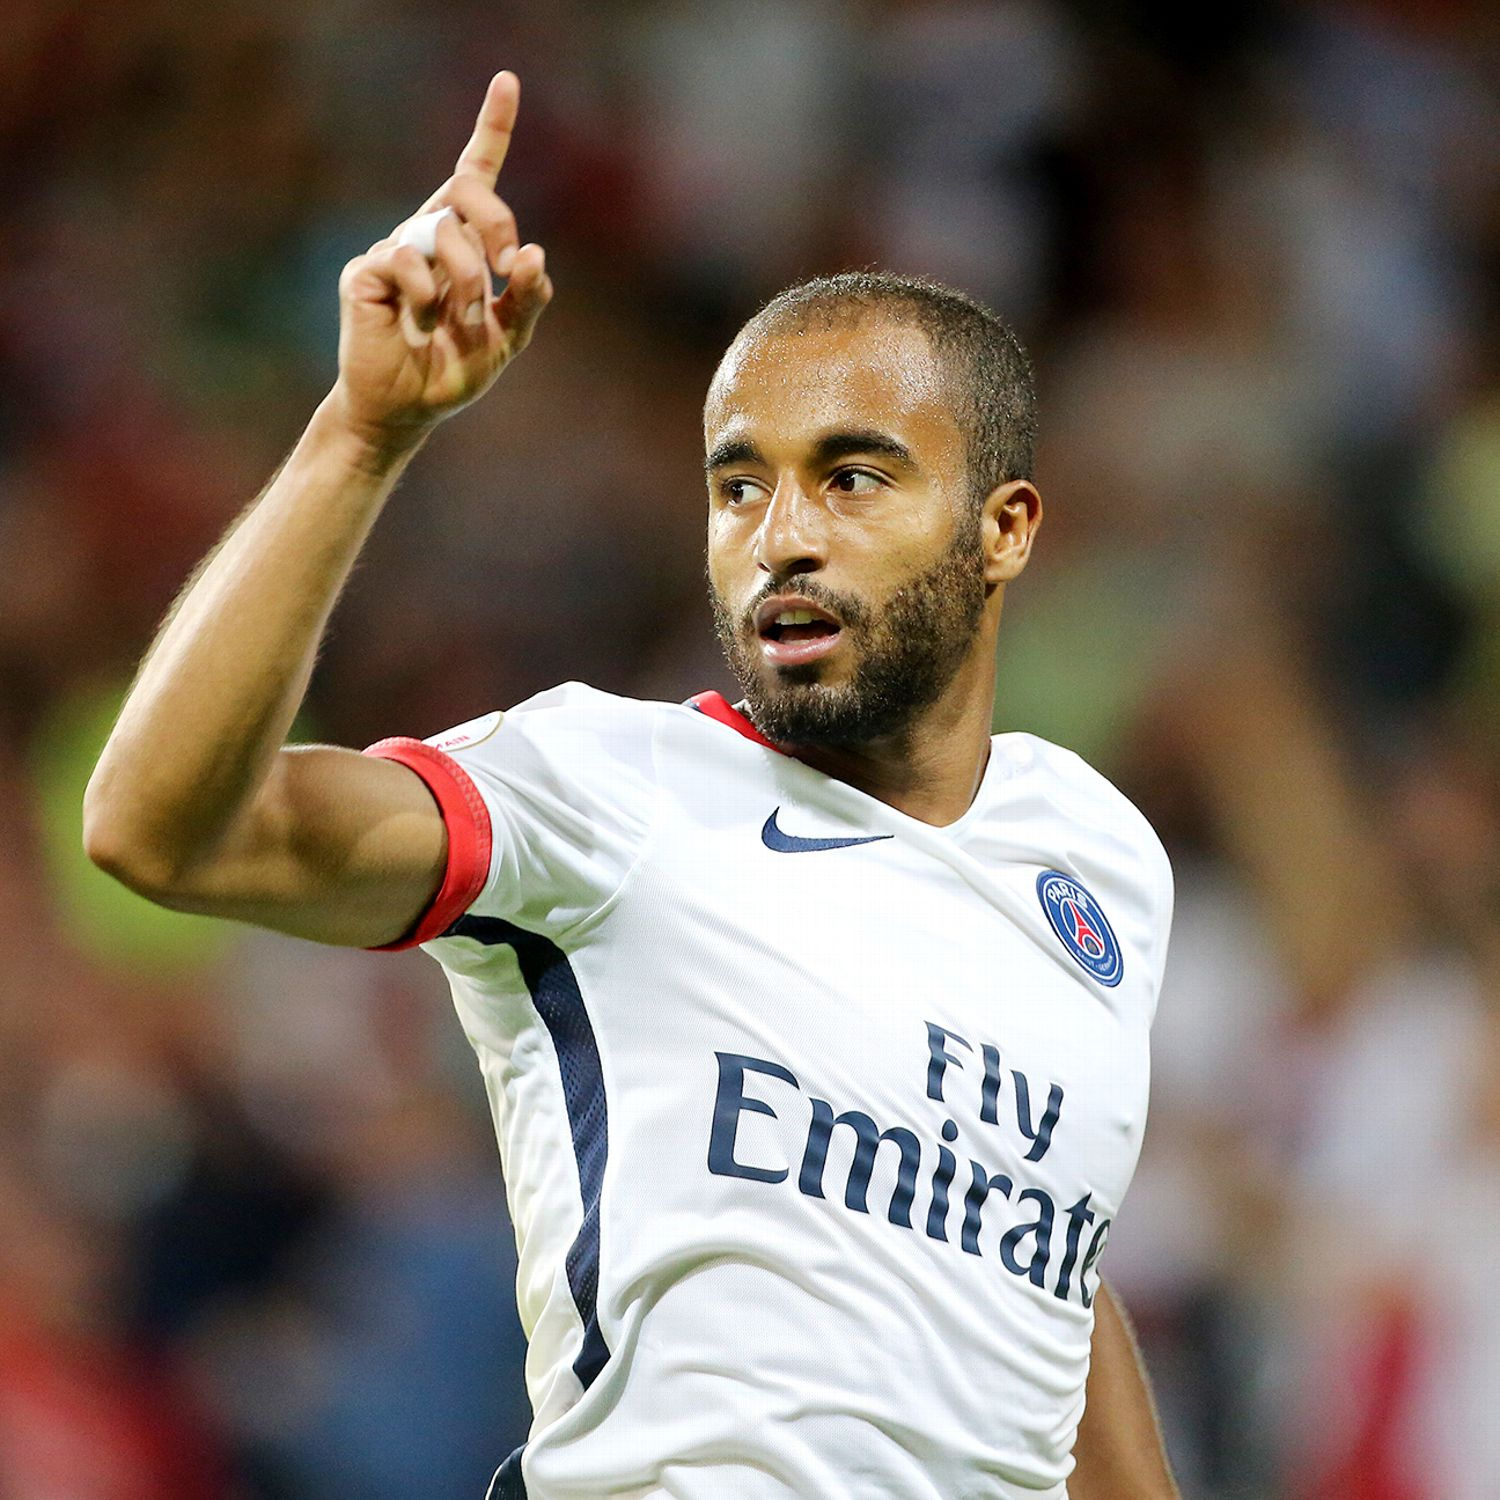 Lucas Moura To Psg Price: PSG Lucas Moura Must Harness Talent To Become Star